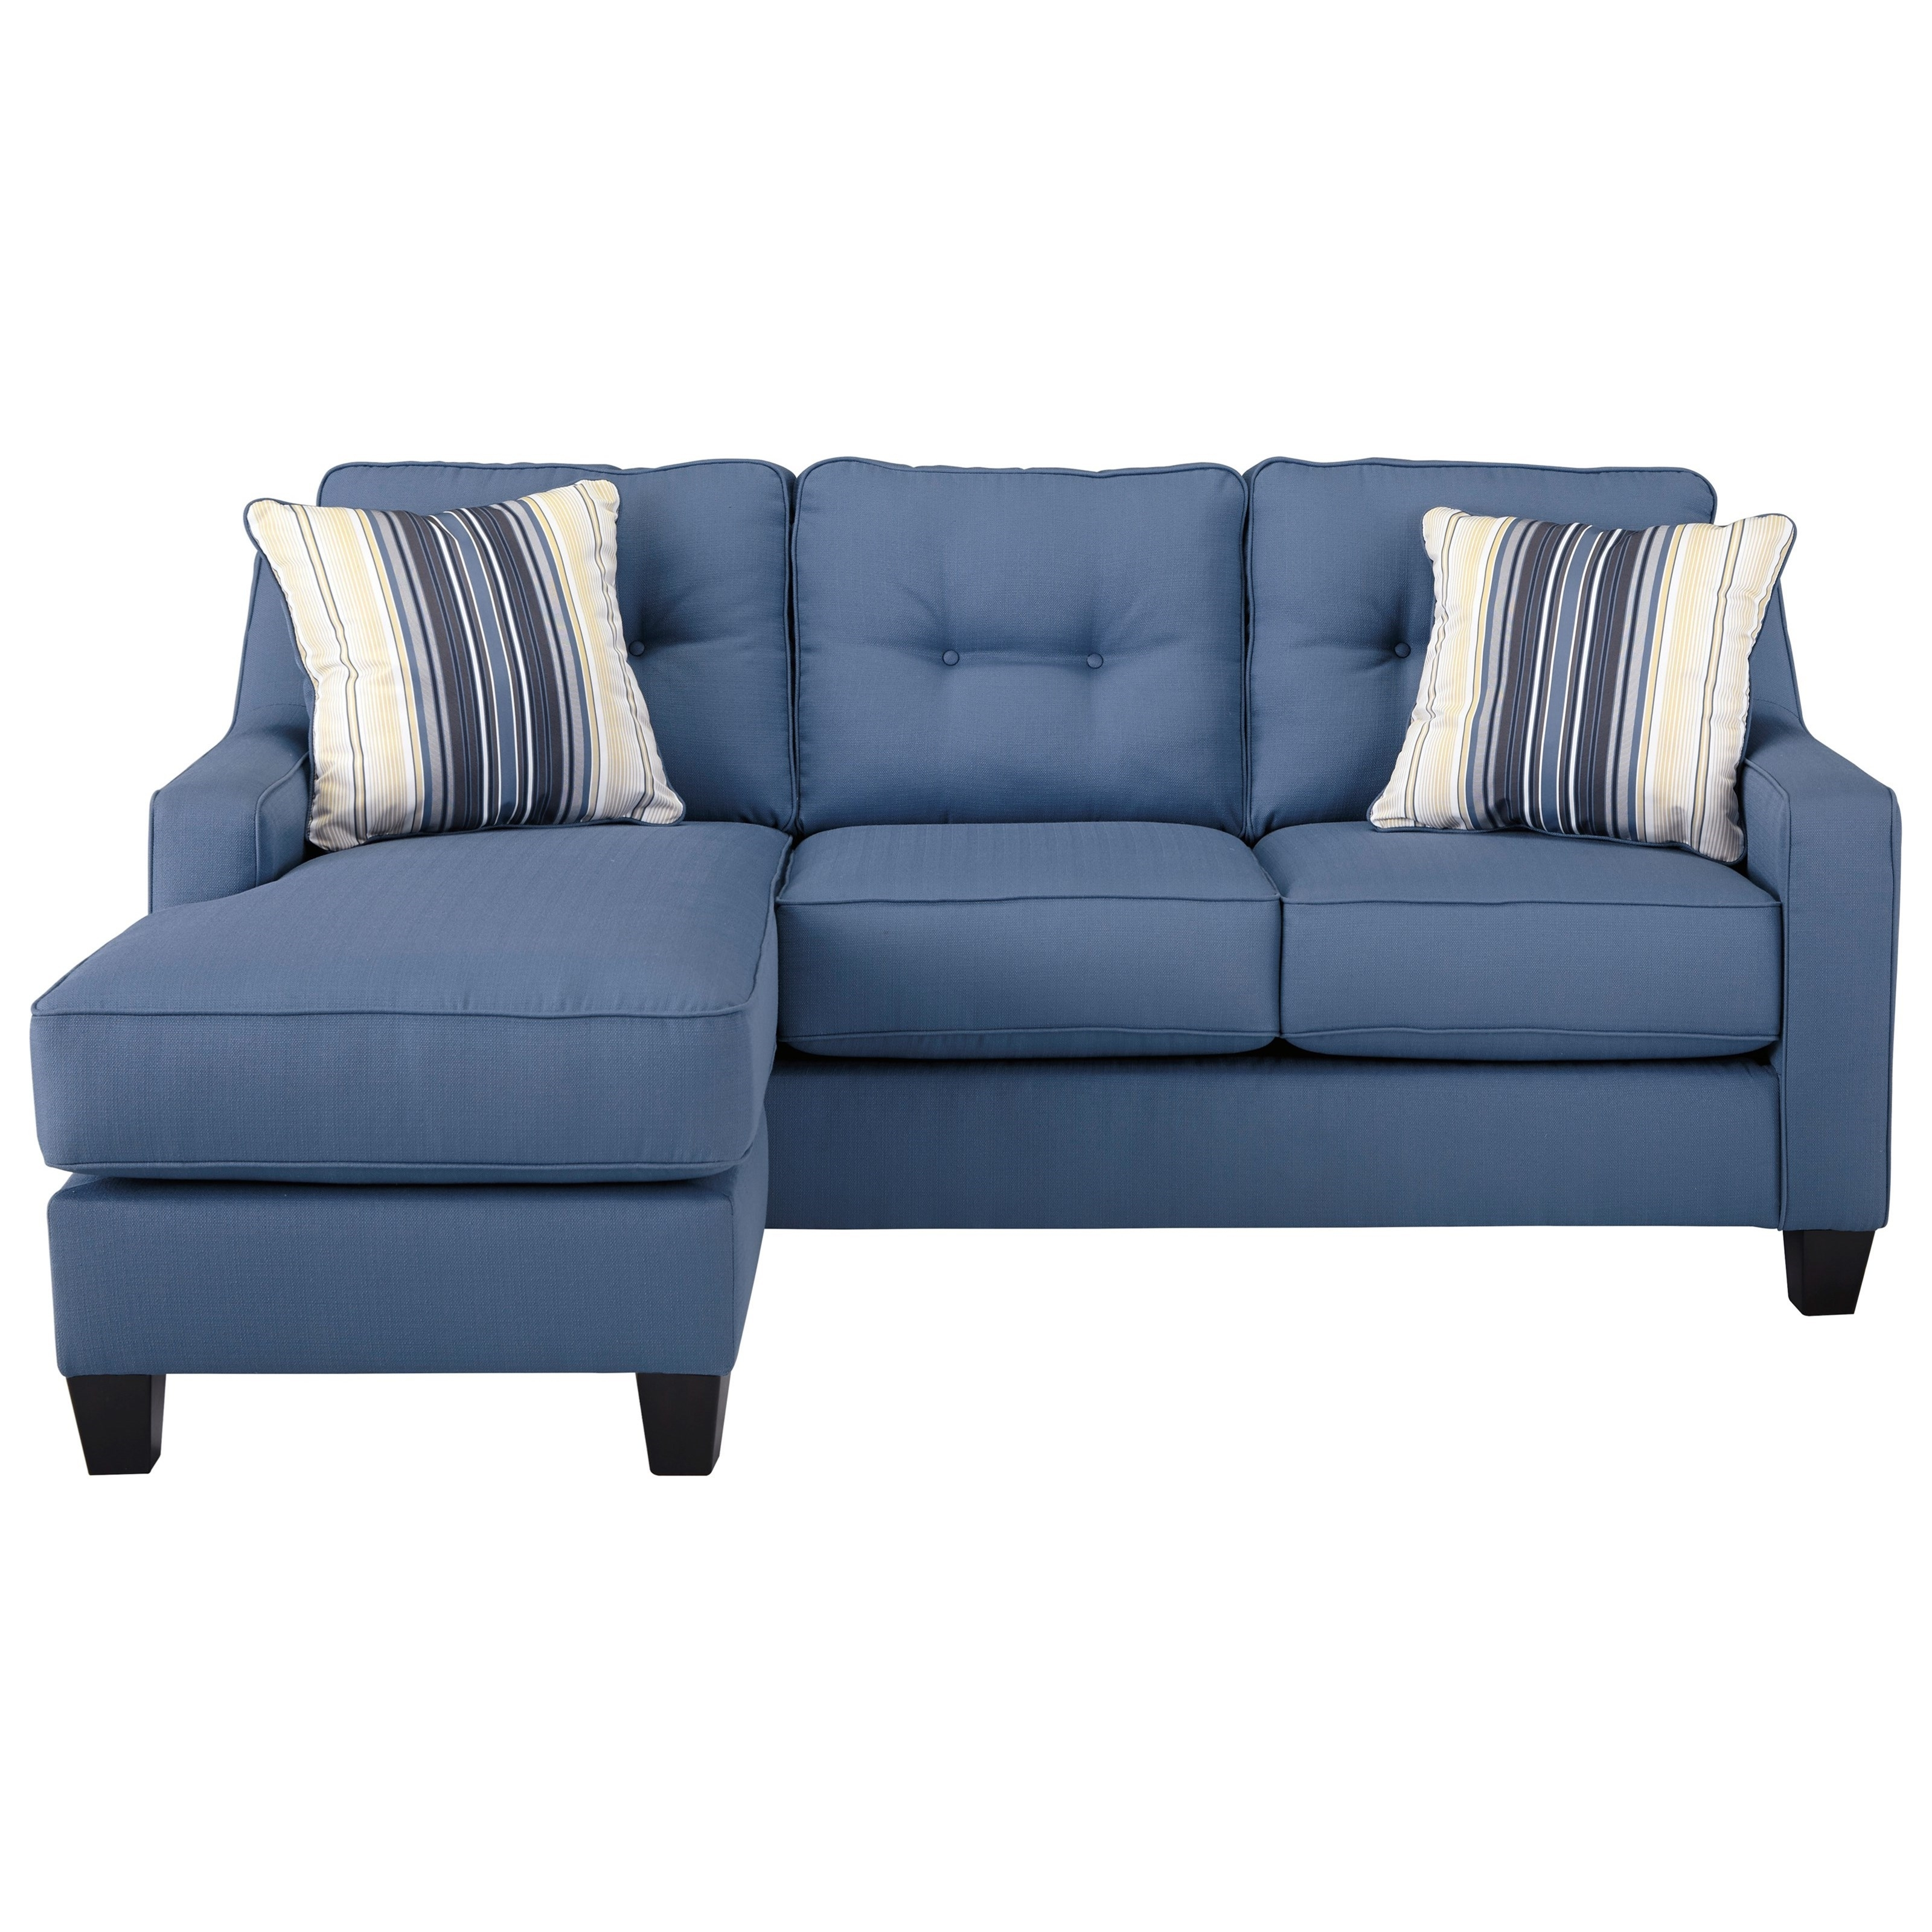 Well Known Benchcraft Aldie Nuvella Queen Sofa Chaise Sleeper In Performance Inside Sleeper Sofa Chaises (View 5 of 15)